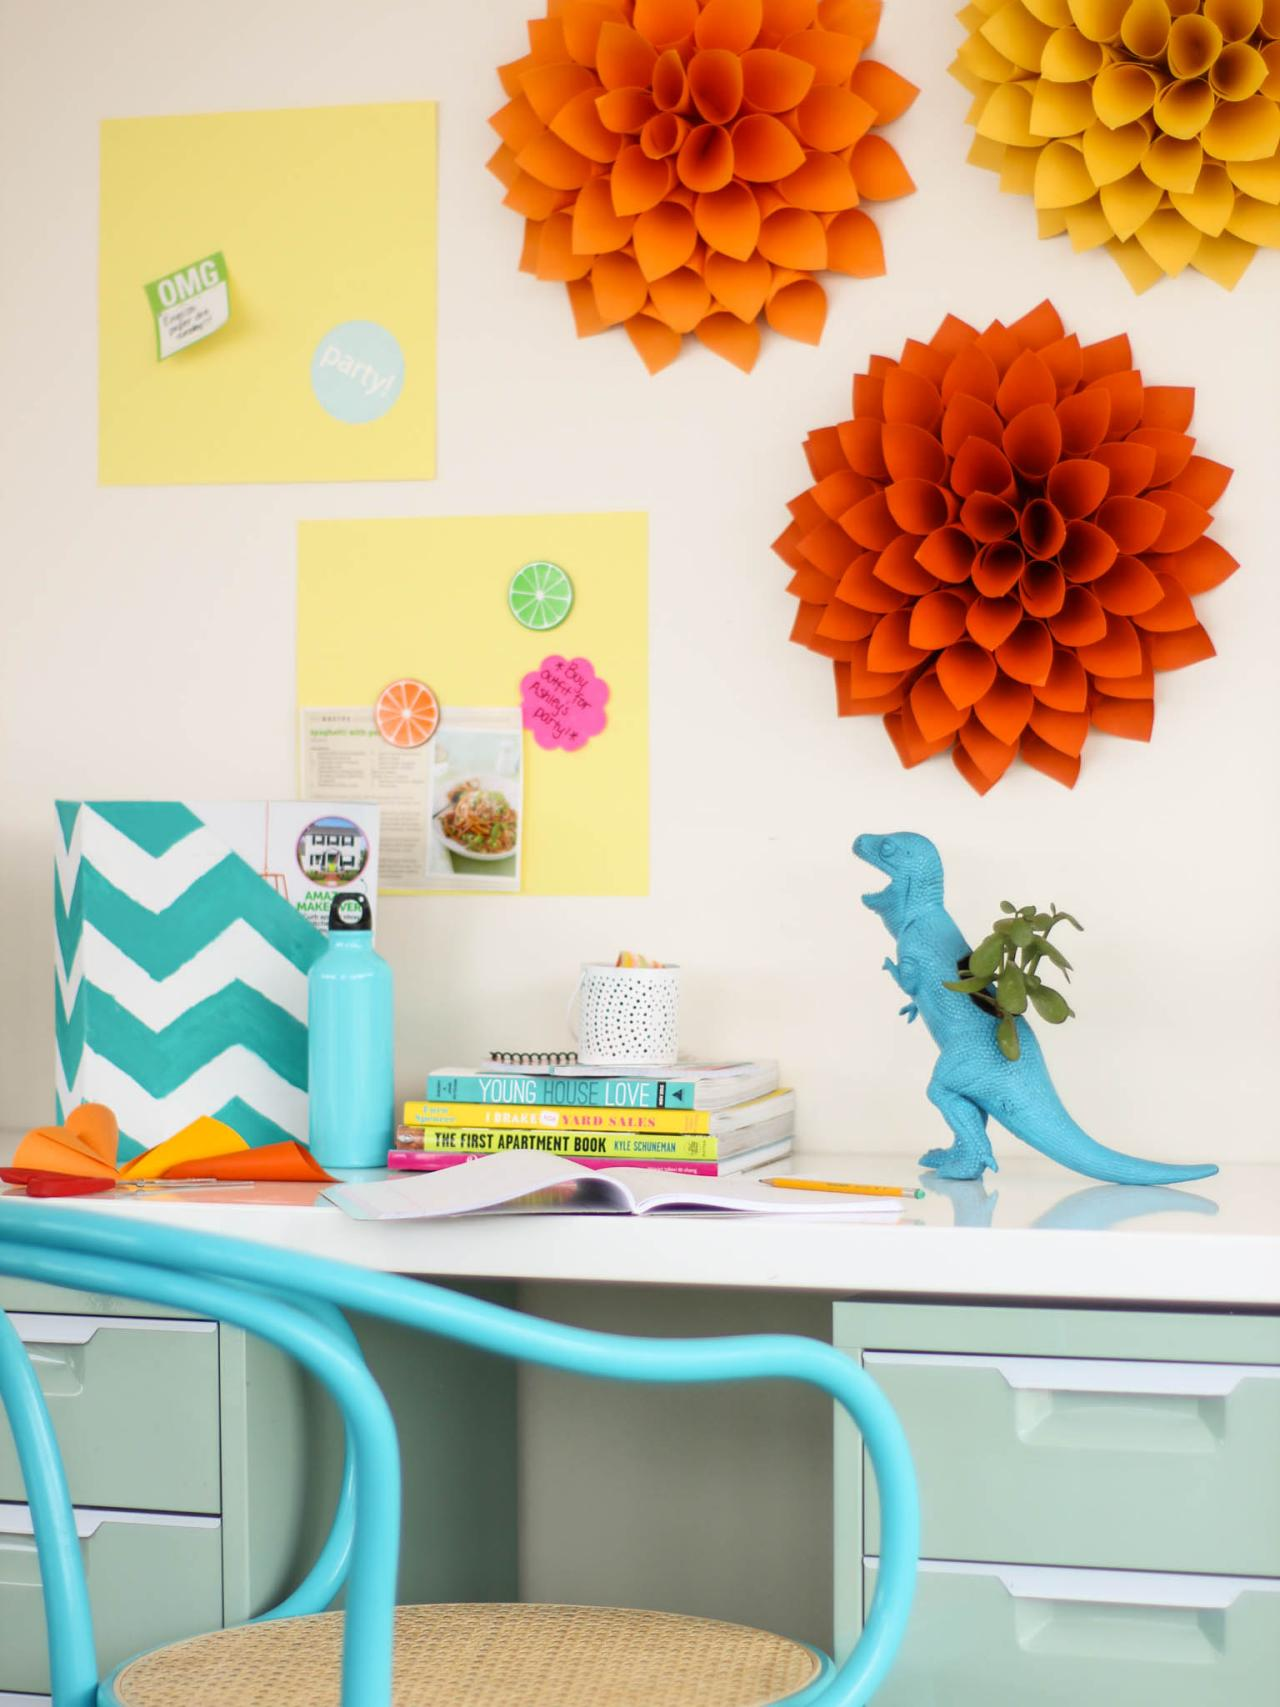 6 DIY Cork Boards for Your Dorm Room | HGTV\'s Decorating & Design ...